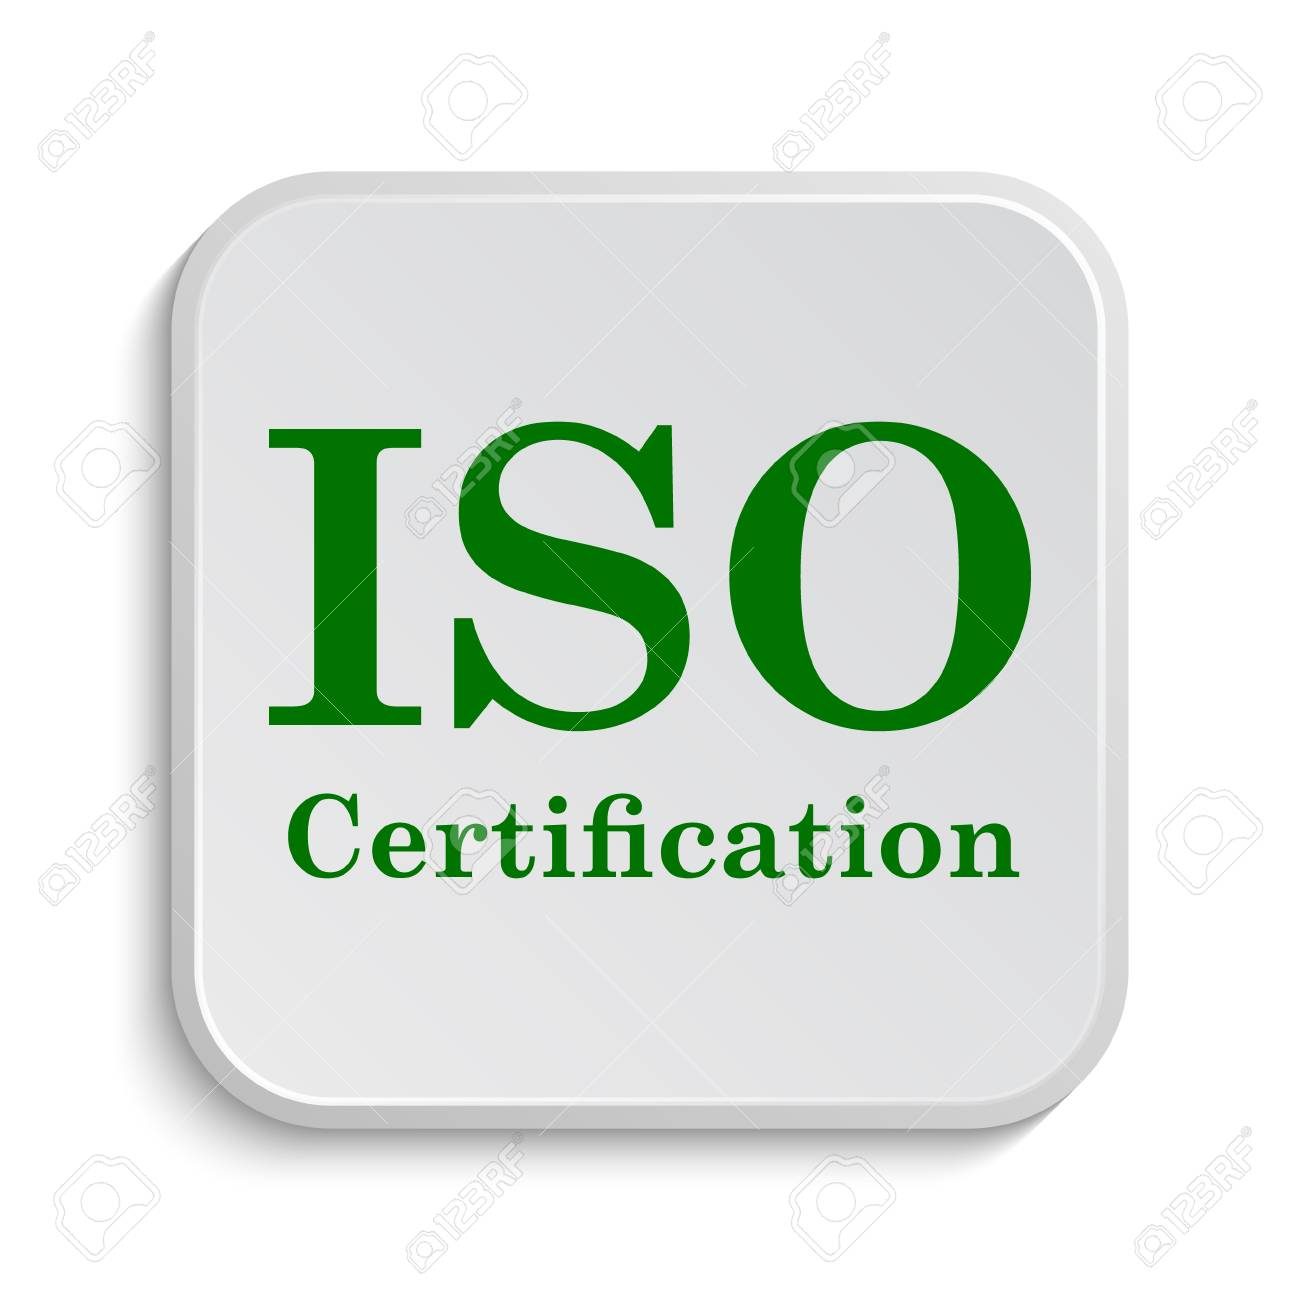 Iso Certification Icon Internet Button On White Background Stock